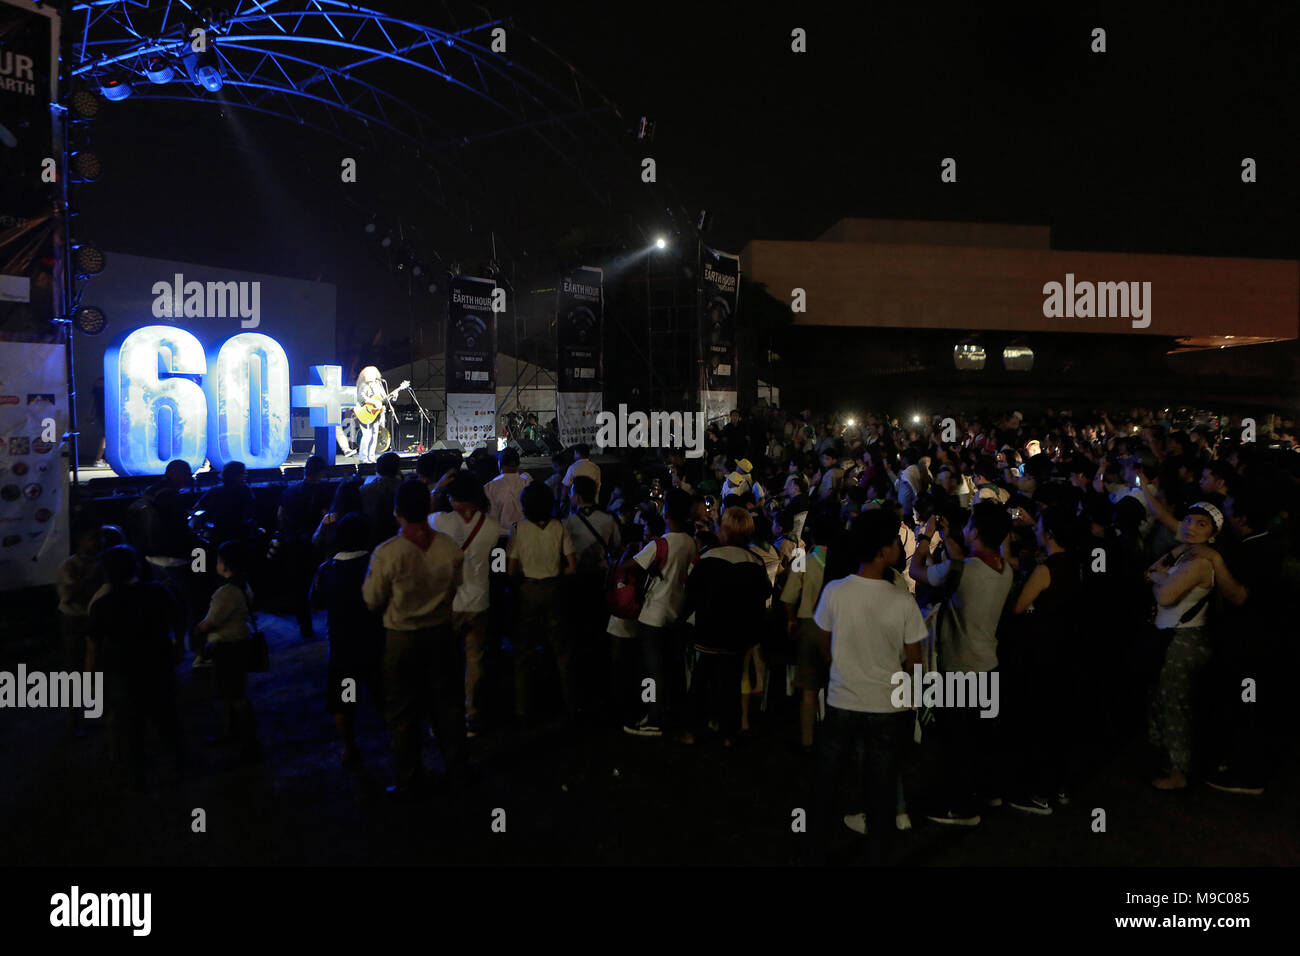 Pasay City, Philippines. 24th Mar, 2018. Artists perform during the annual Earth Hour campaign in Pasay City, the Philippines, March 24, 2018. Credit: Rouelle Umali/Xinhua/Alamy Live News - Stock Image